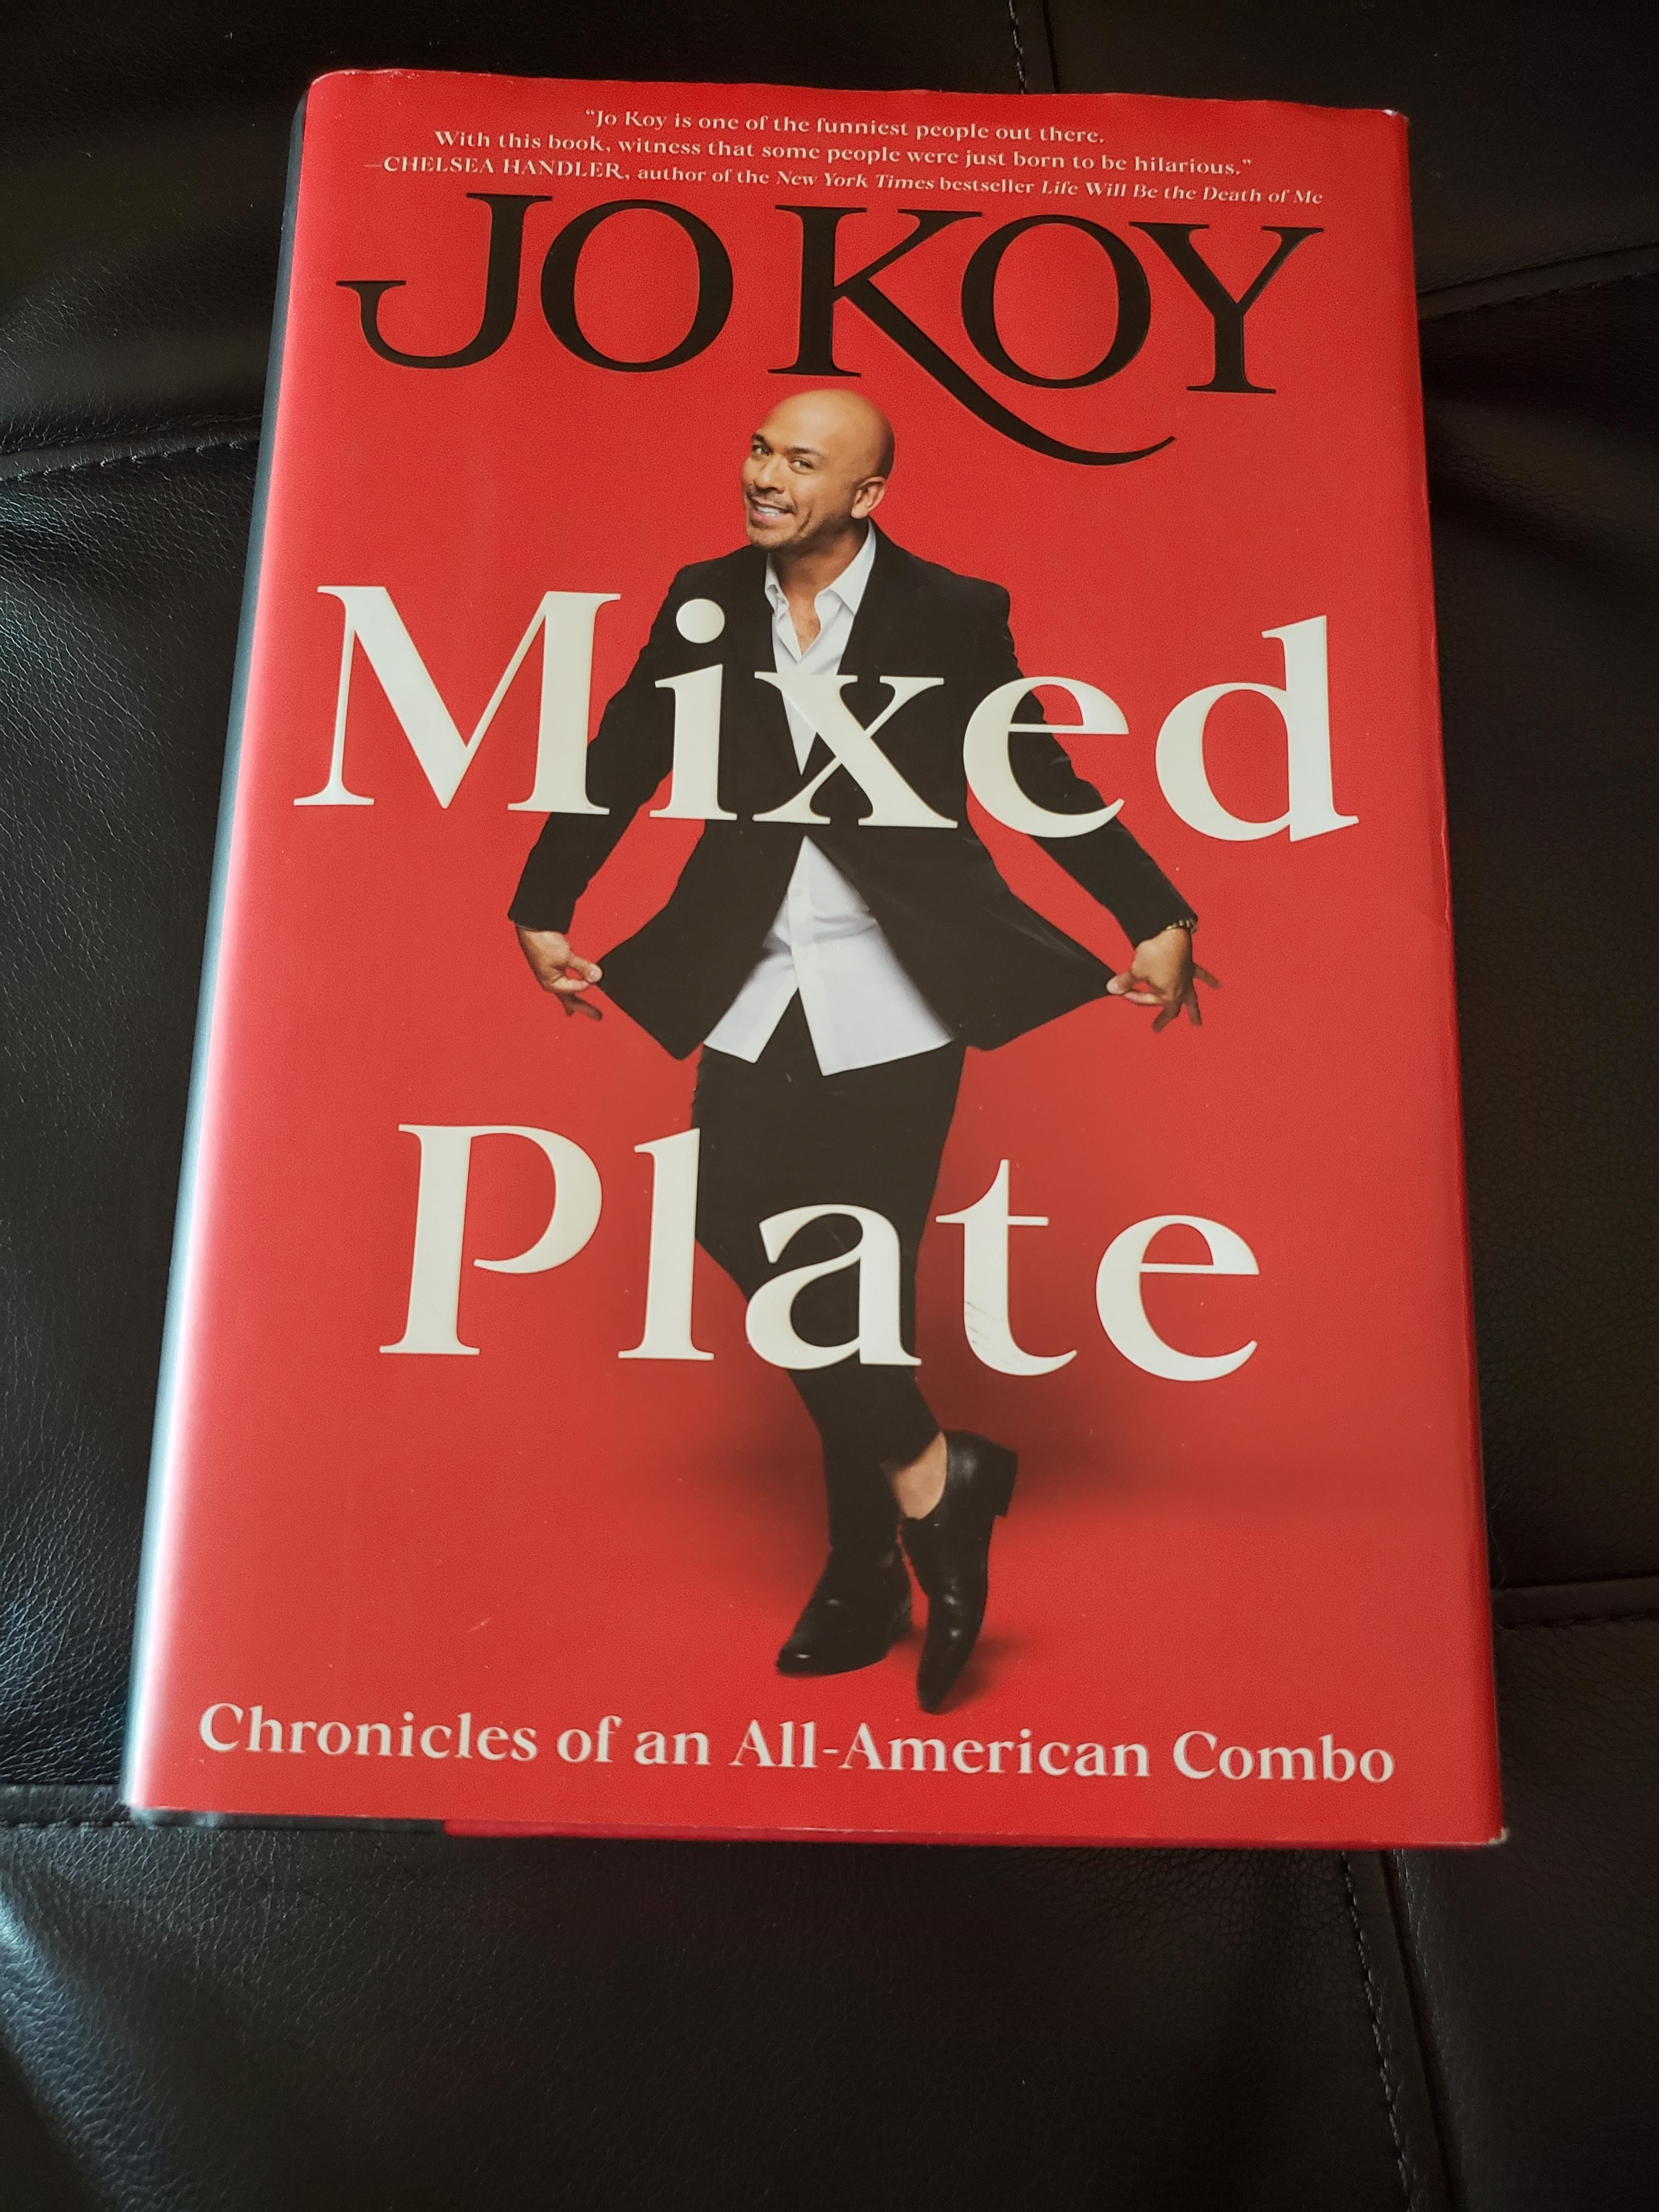 So I'm about halfway through my copy of Mixed Plate by Jo Koy, but I will say that I wish I waited to buy because he had signed copies at his show. I'm enjoying it, but that would've been cool to have.